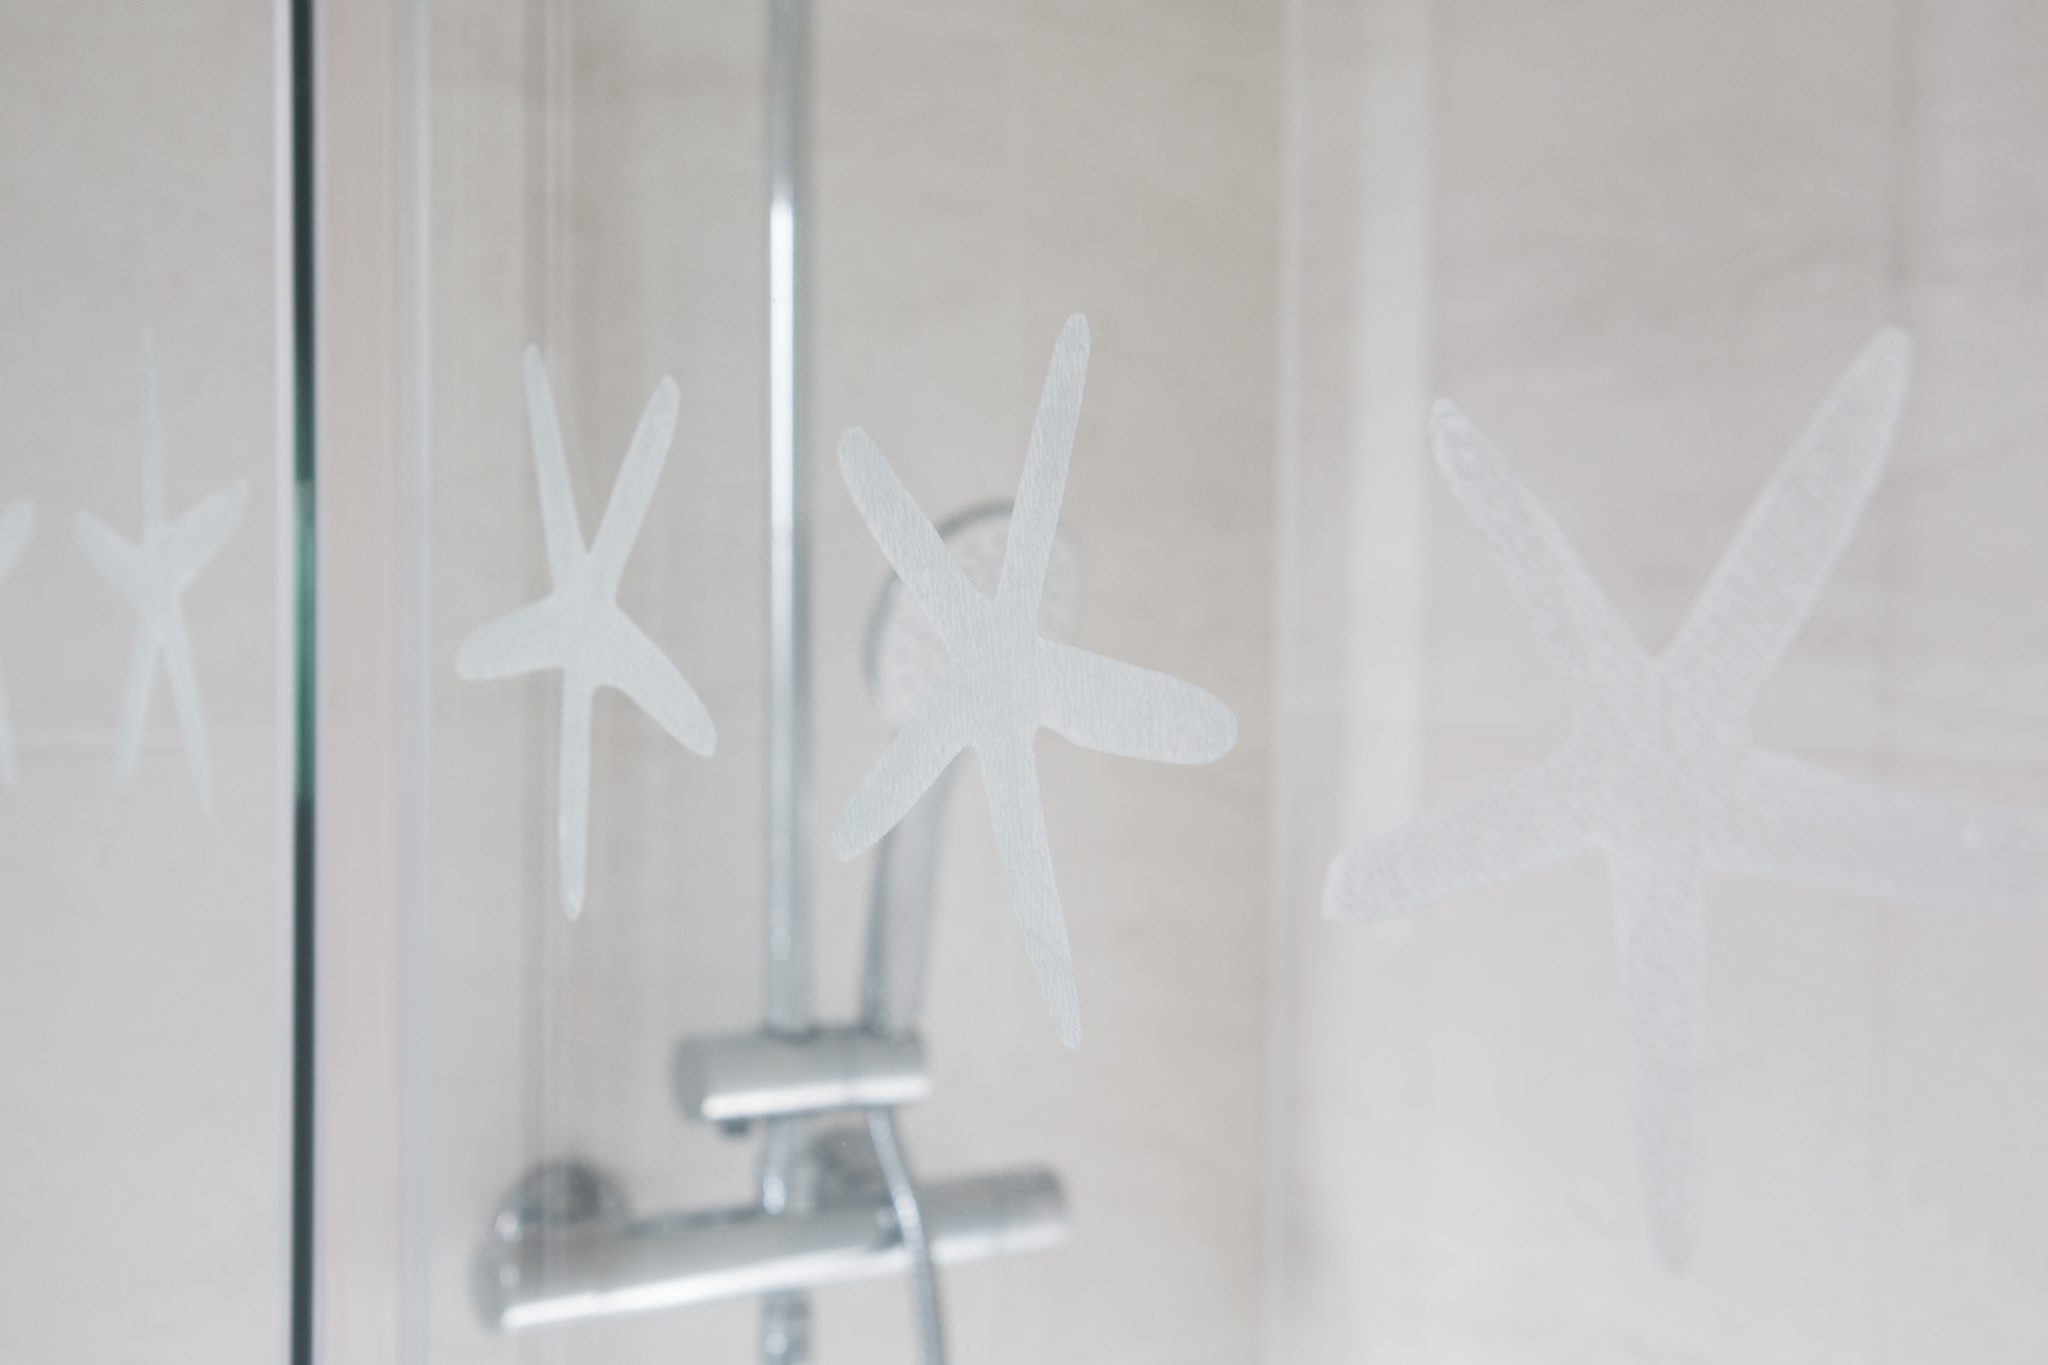 Glass shower enclosure with starfish made from d-c-fix® Opal adhesive film.